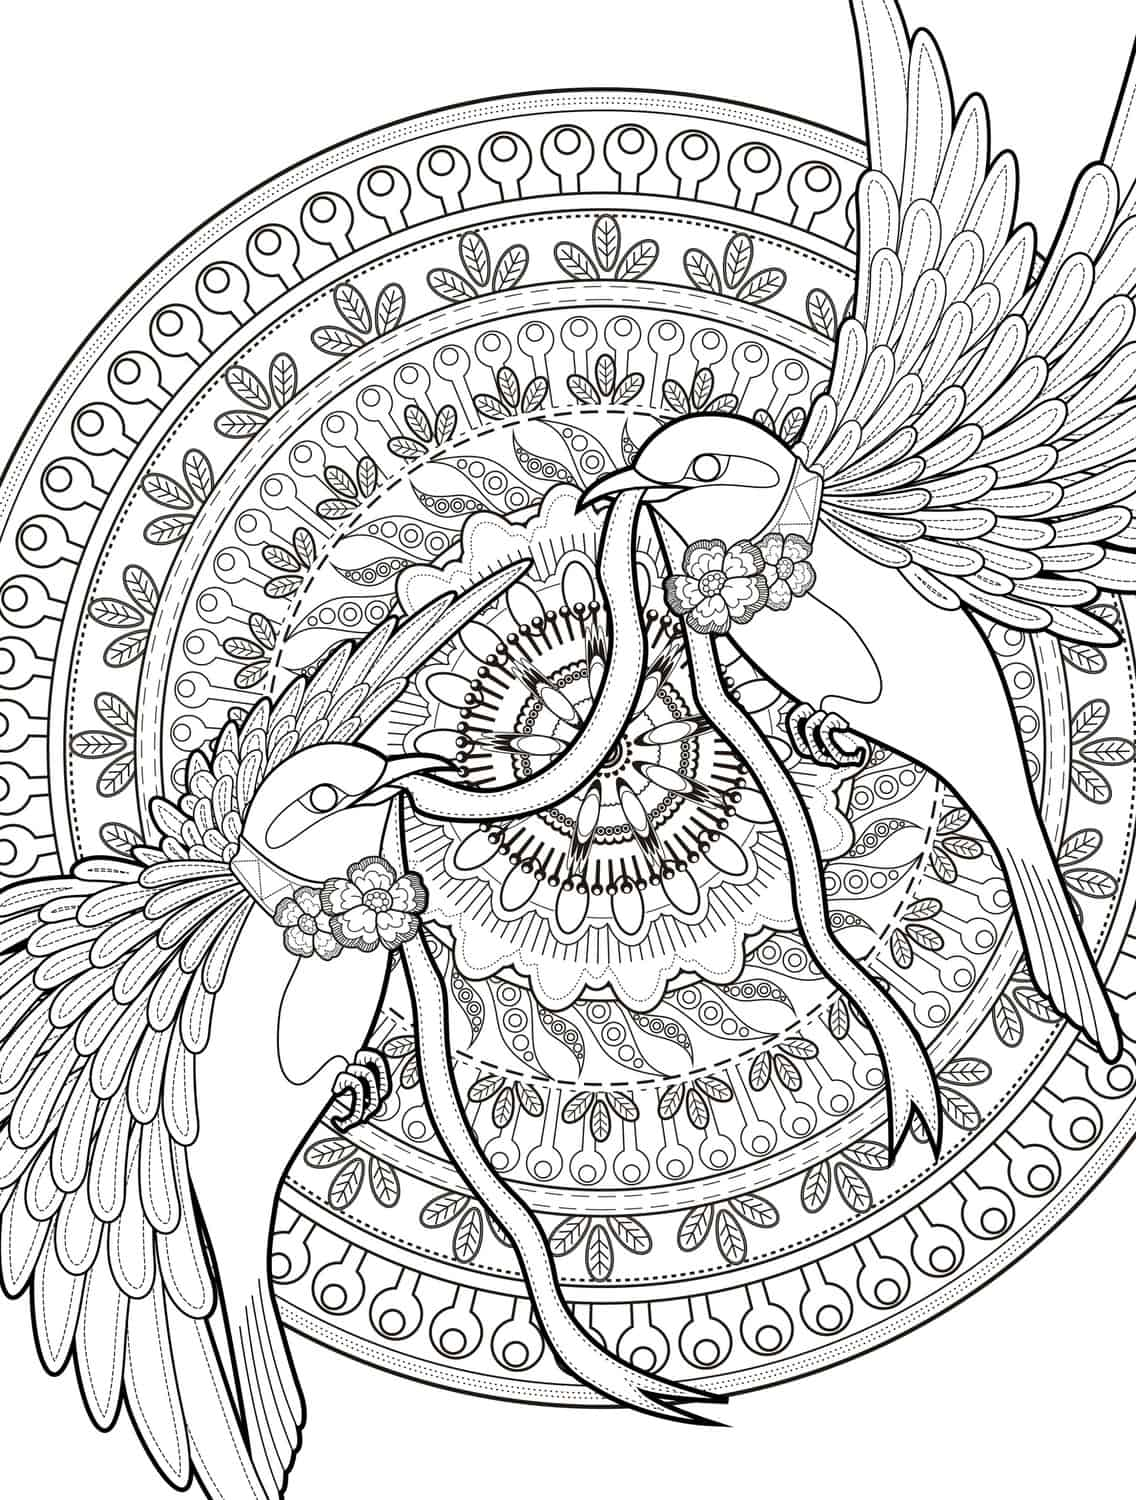 24 more free printable coloring pages page 24 of 25